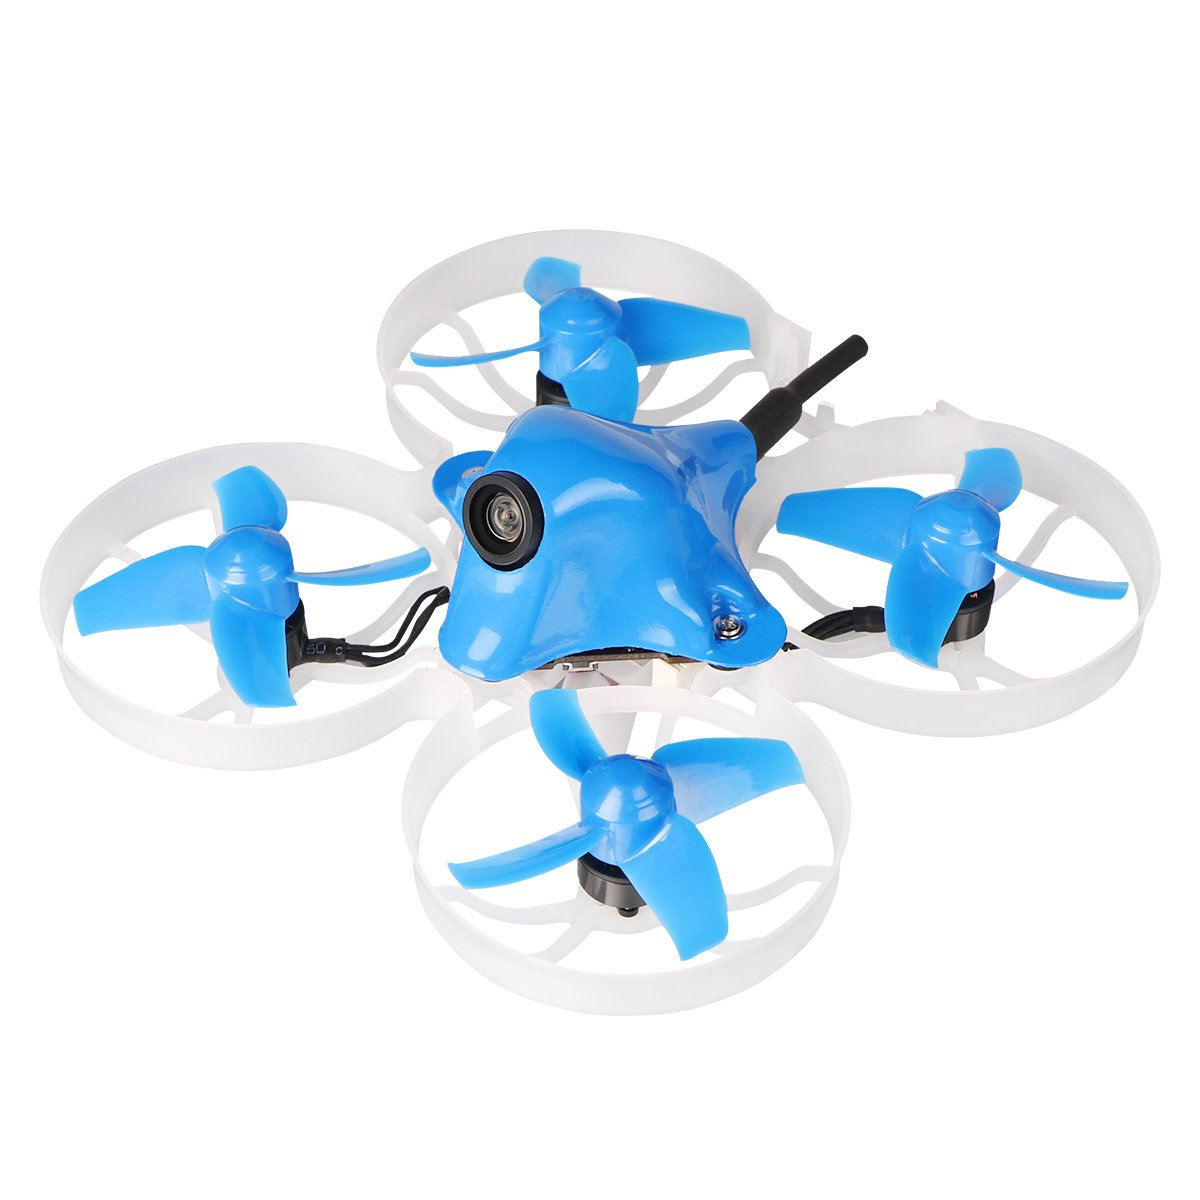 Beta75PRO2 2S Brusheless BNF Whoop Quadcopter S-FHSS(PH2.0仕様)完成機